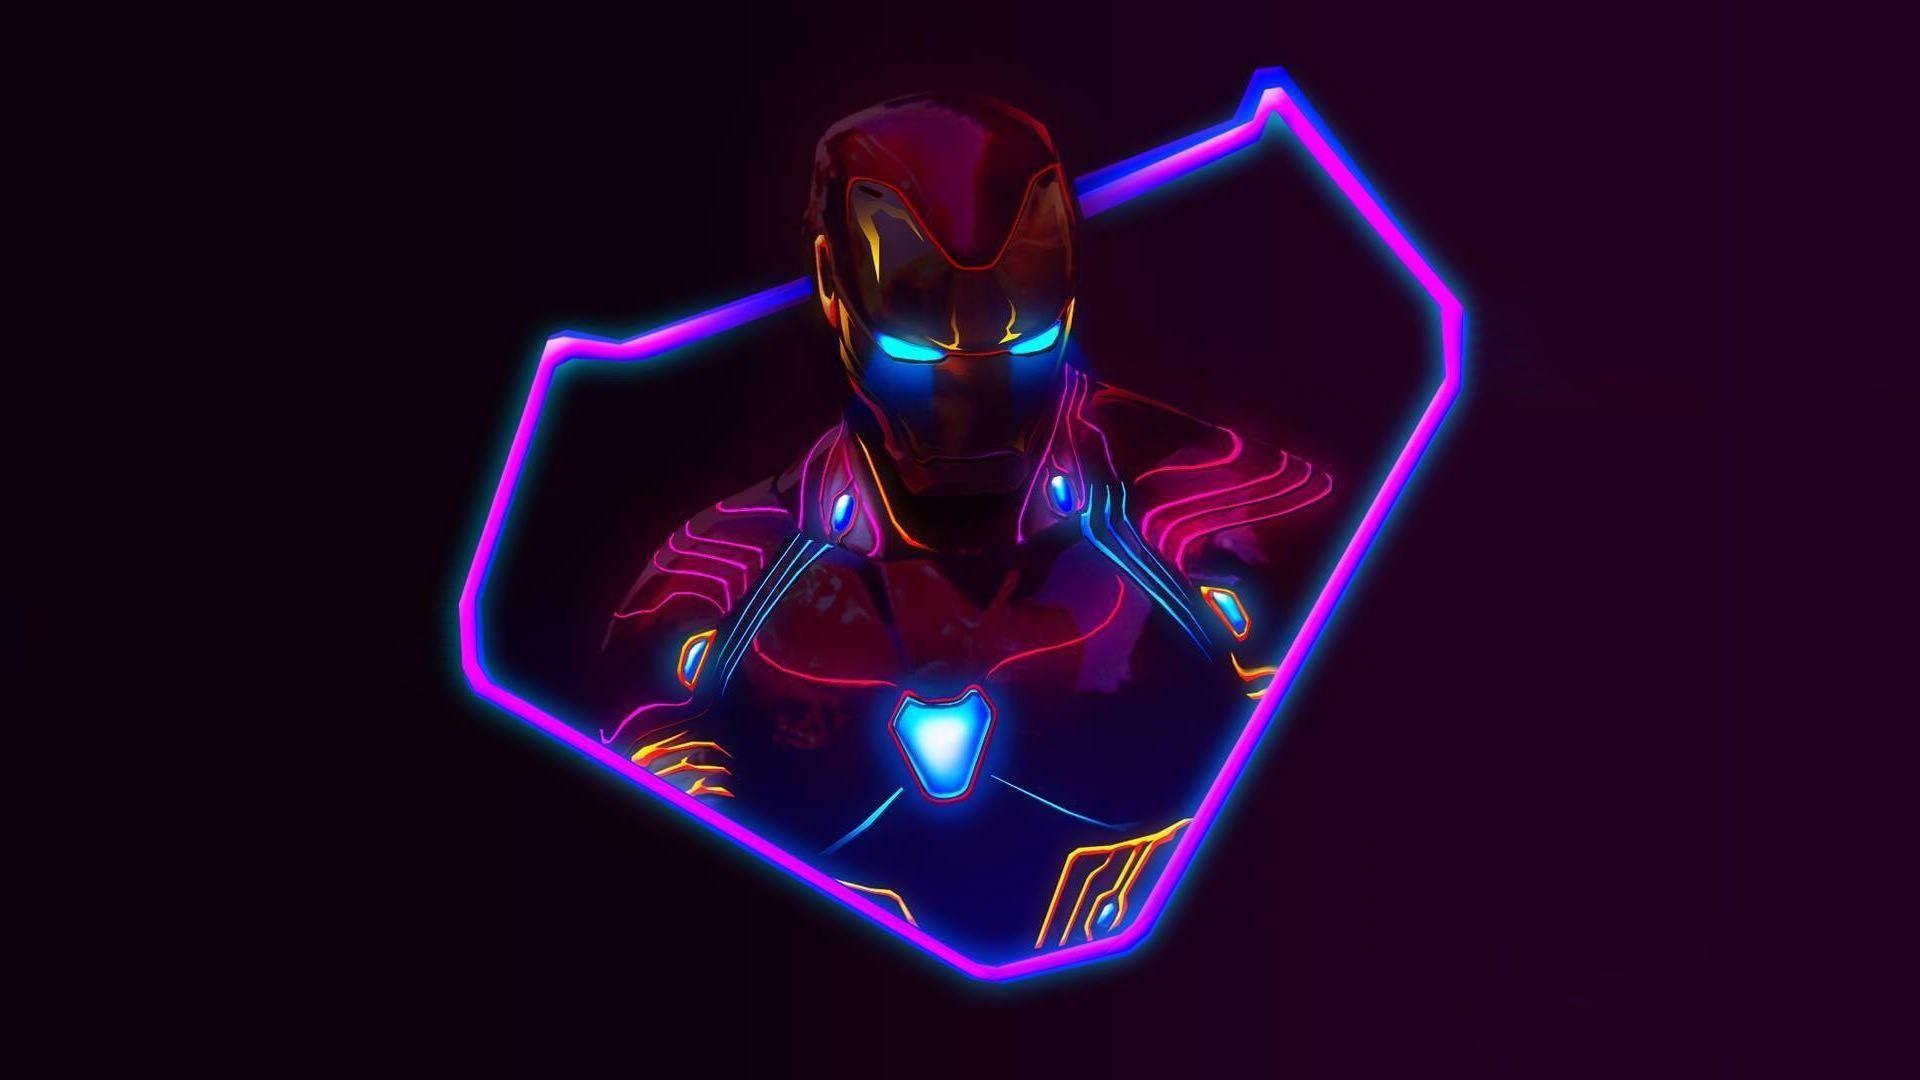 Cool Neon Wallpapers For Pc